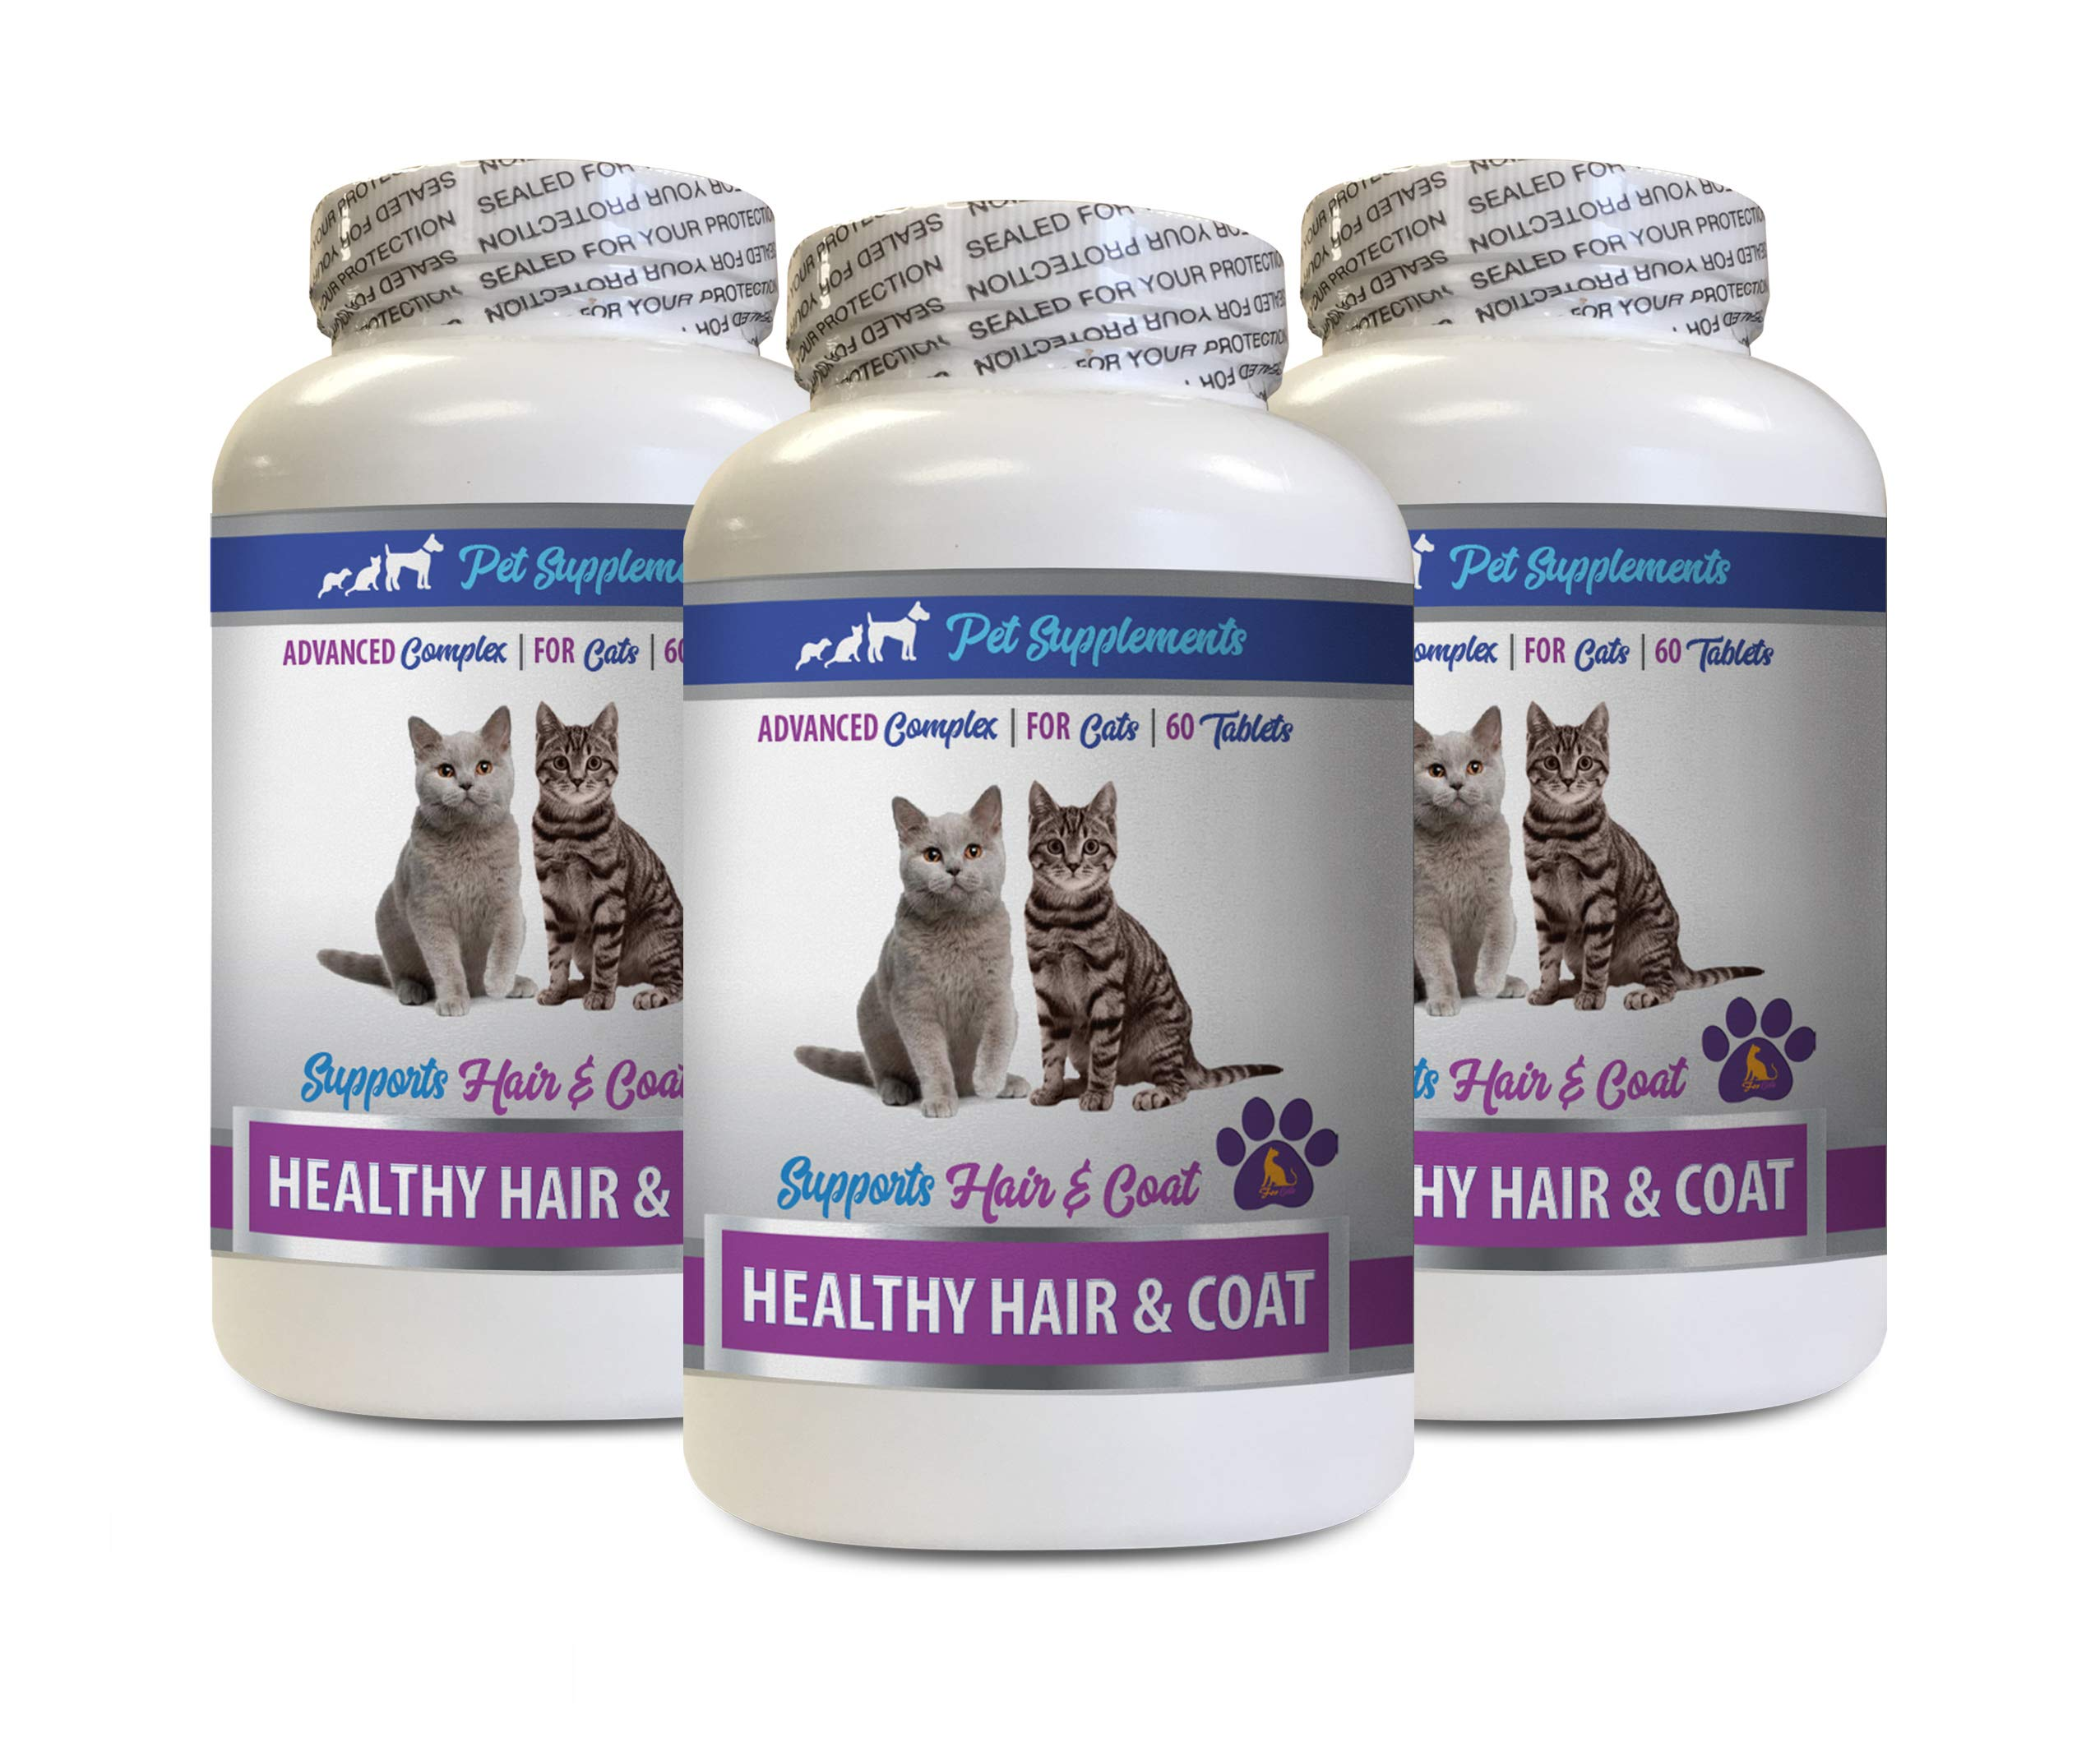 Dry Skin Care for Cats - Best Healthy Hair and Coat Supplement for Cats - Advanced Complex - Nail Health - cat Vitamin b Supplement - 3 Bottles (180 Tablets) by PET SUPPLEMENTS